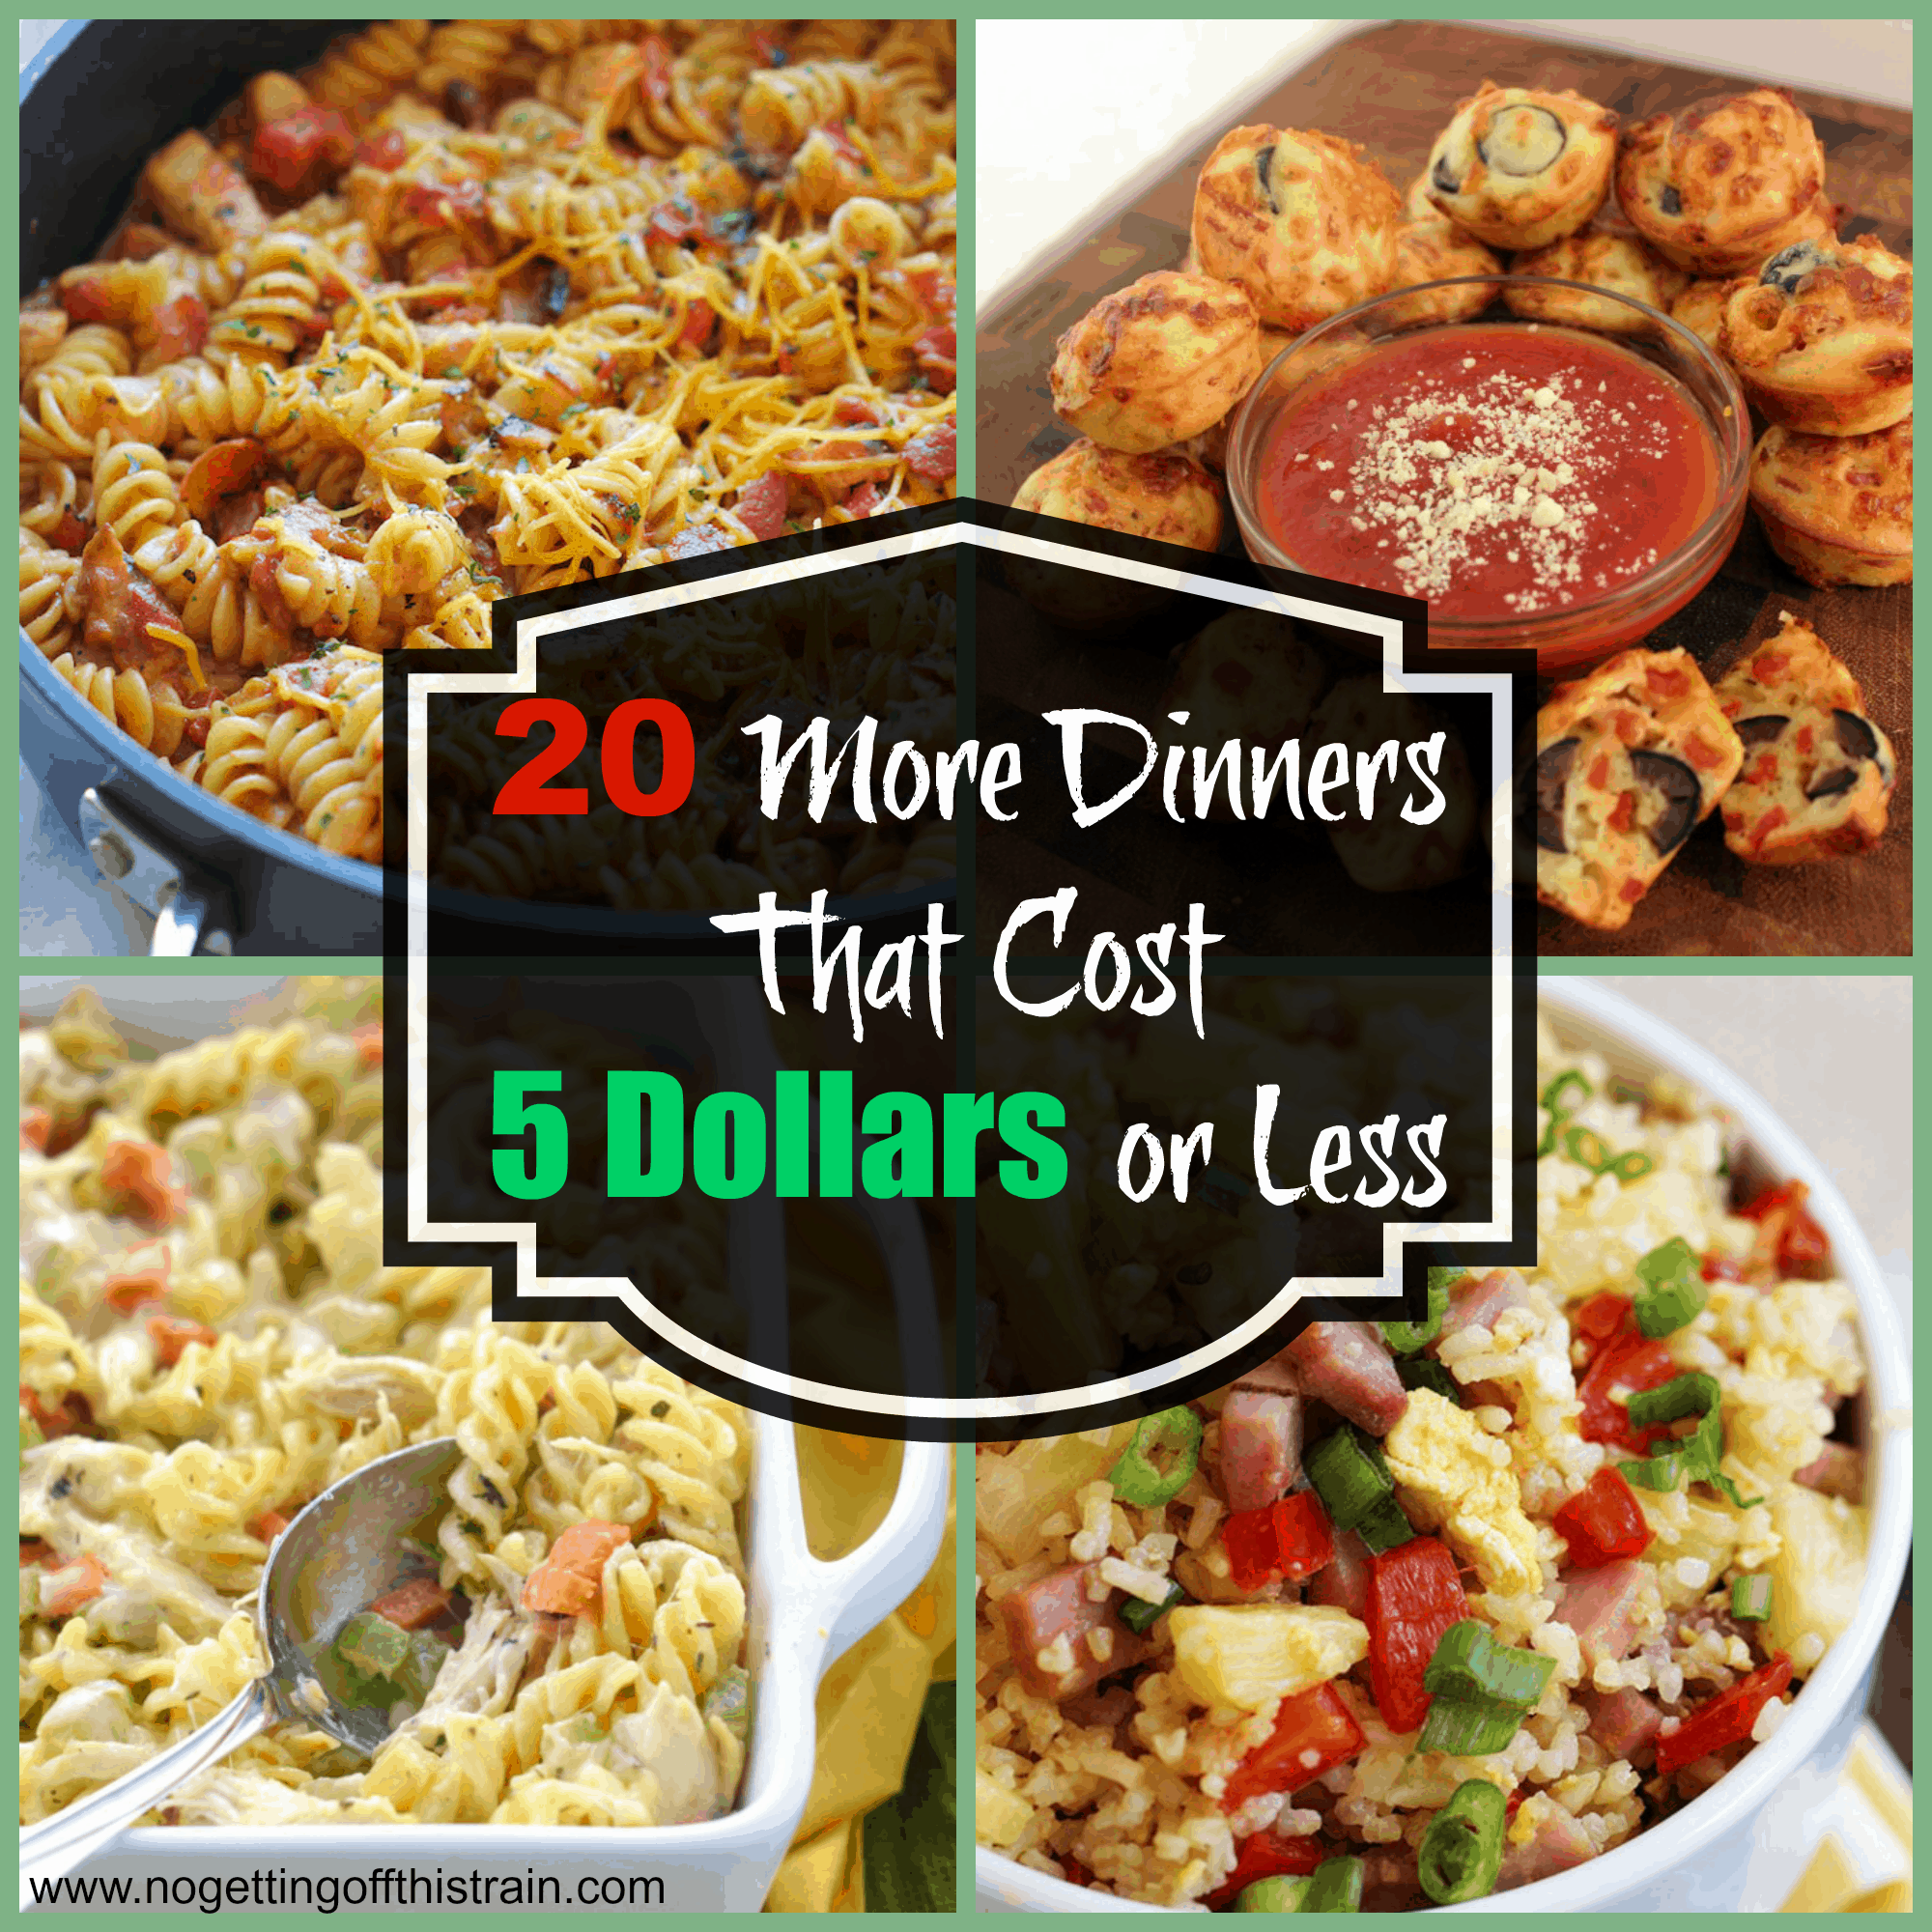 One way to stretch the family food dollar, however, is by eating at home instead of eating out. Learn to how to make frugal but fabulous family dishes for less than $20 with these easy budget recipes.